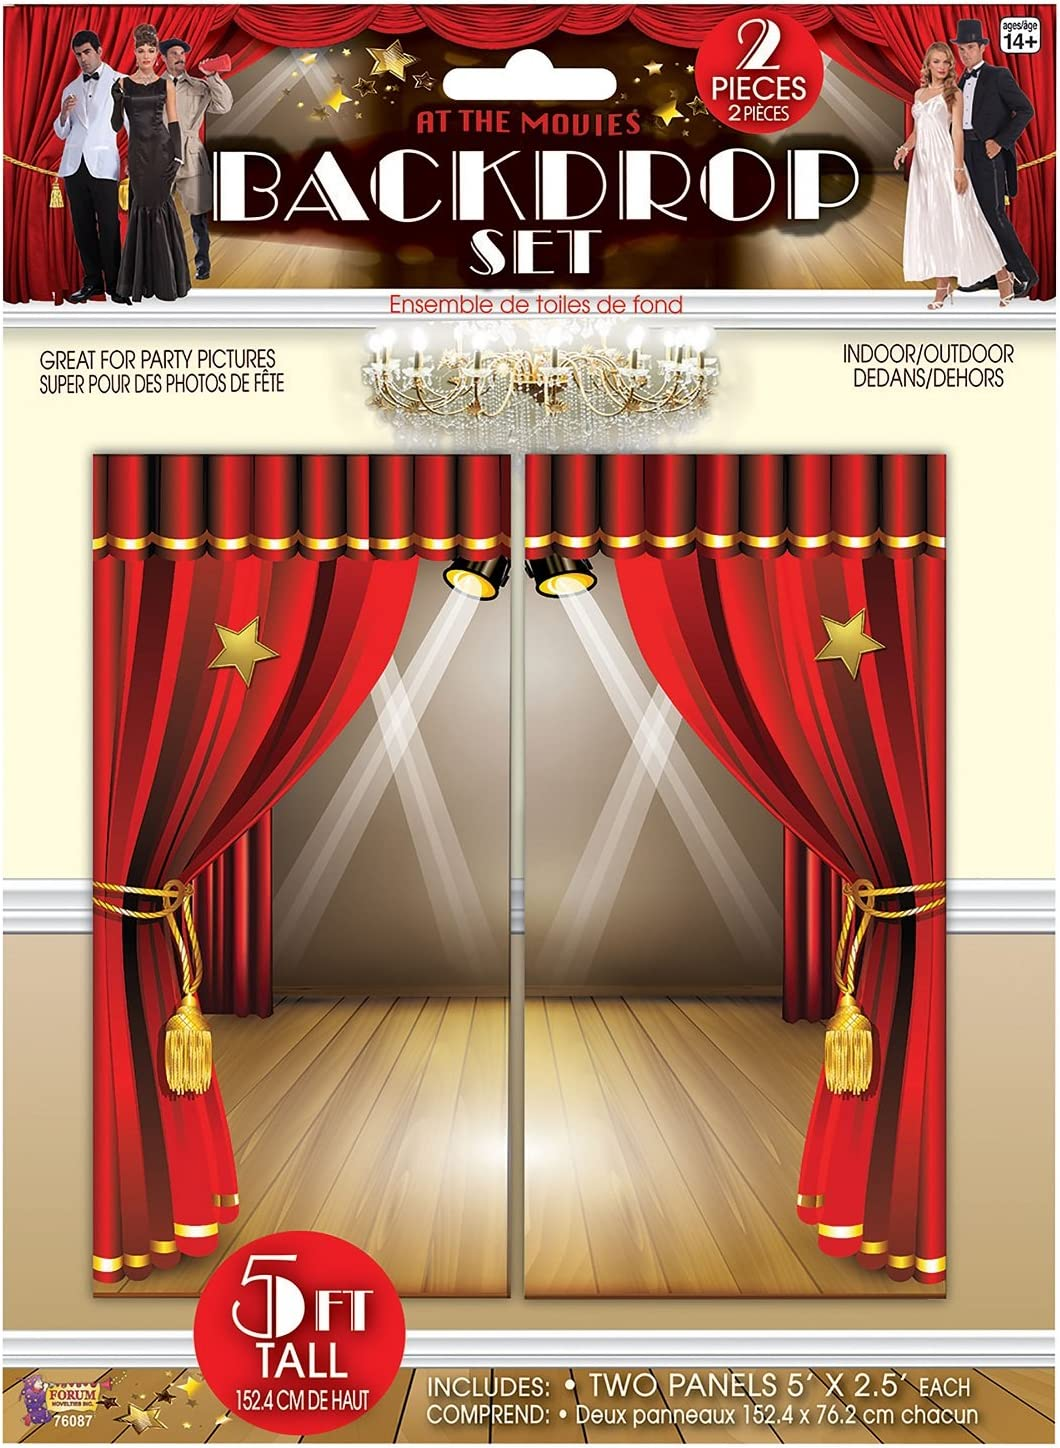 Amazon Com Fancy Me Large 2pc At The Movies Film Cinema Red Carpet Backdrop Kits Photo Booth Selfie Station Party Decoration Accessory 6 Designs Available At The Movies Toys Games